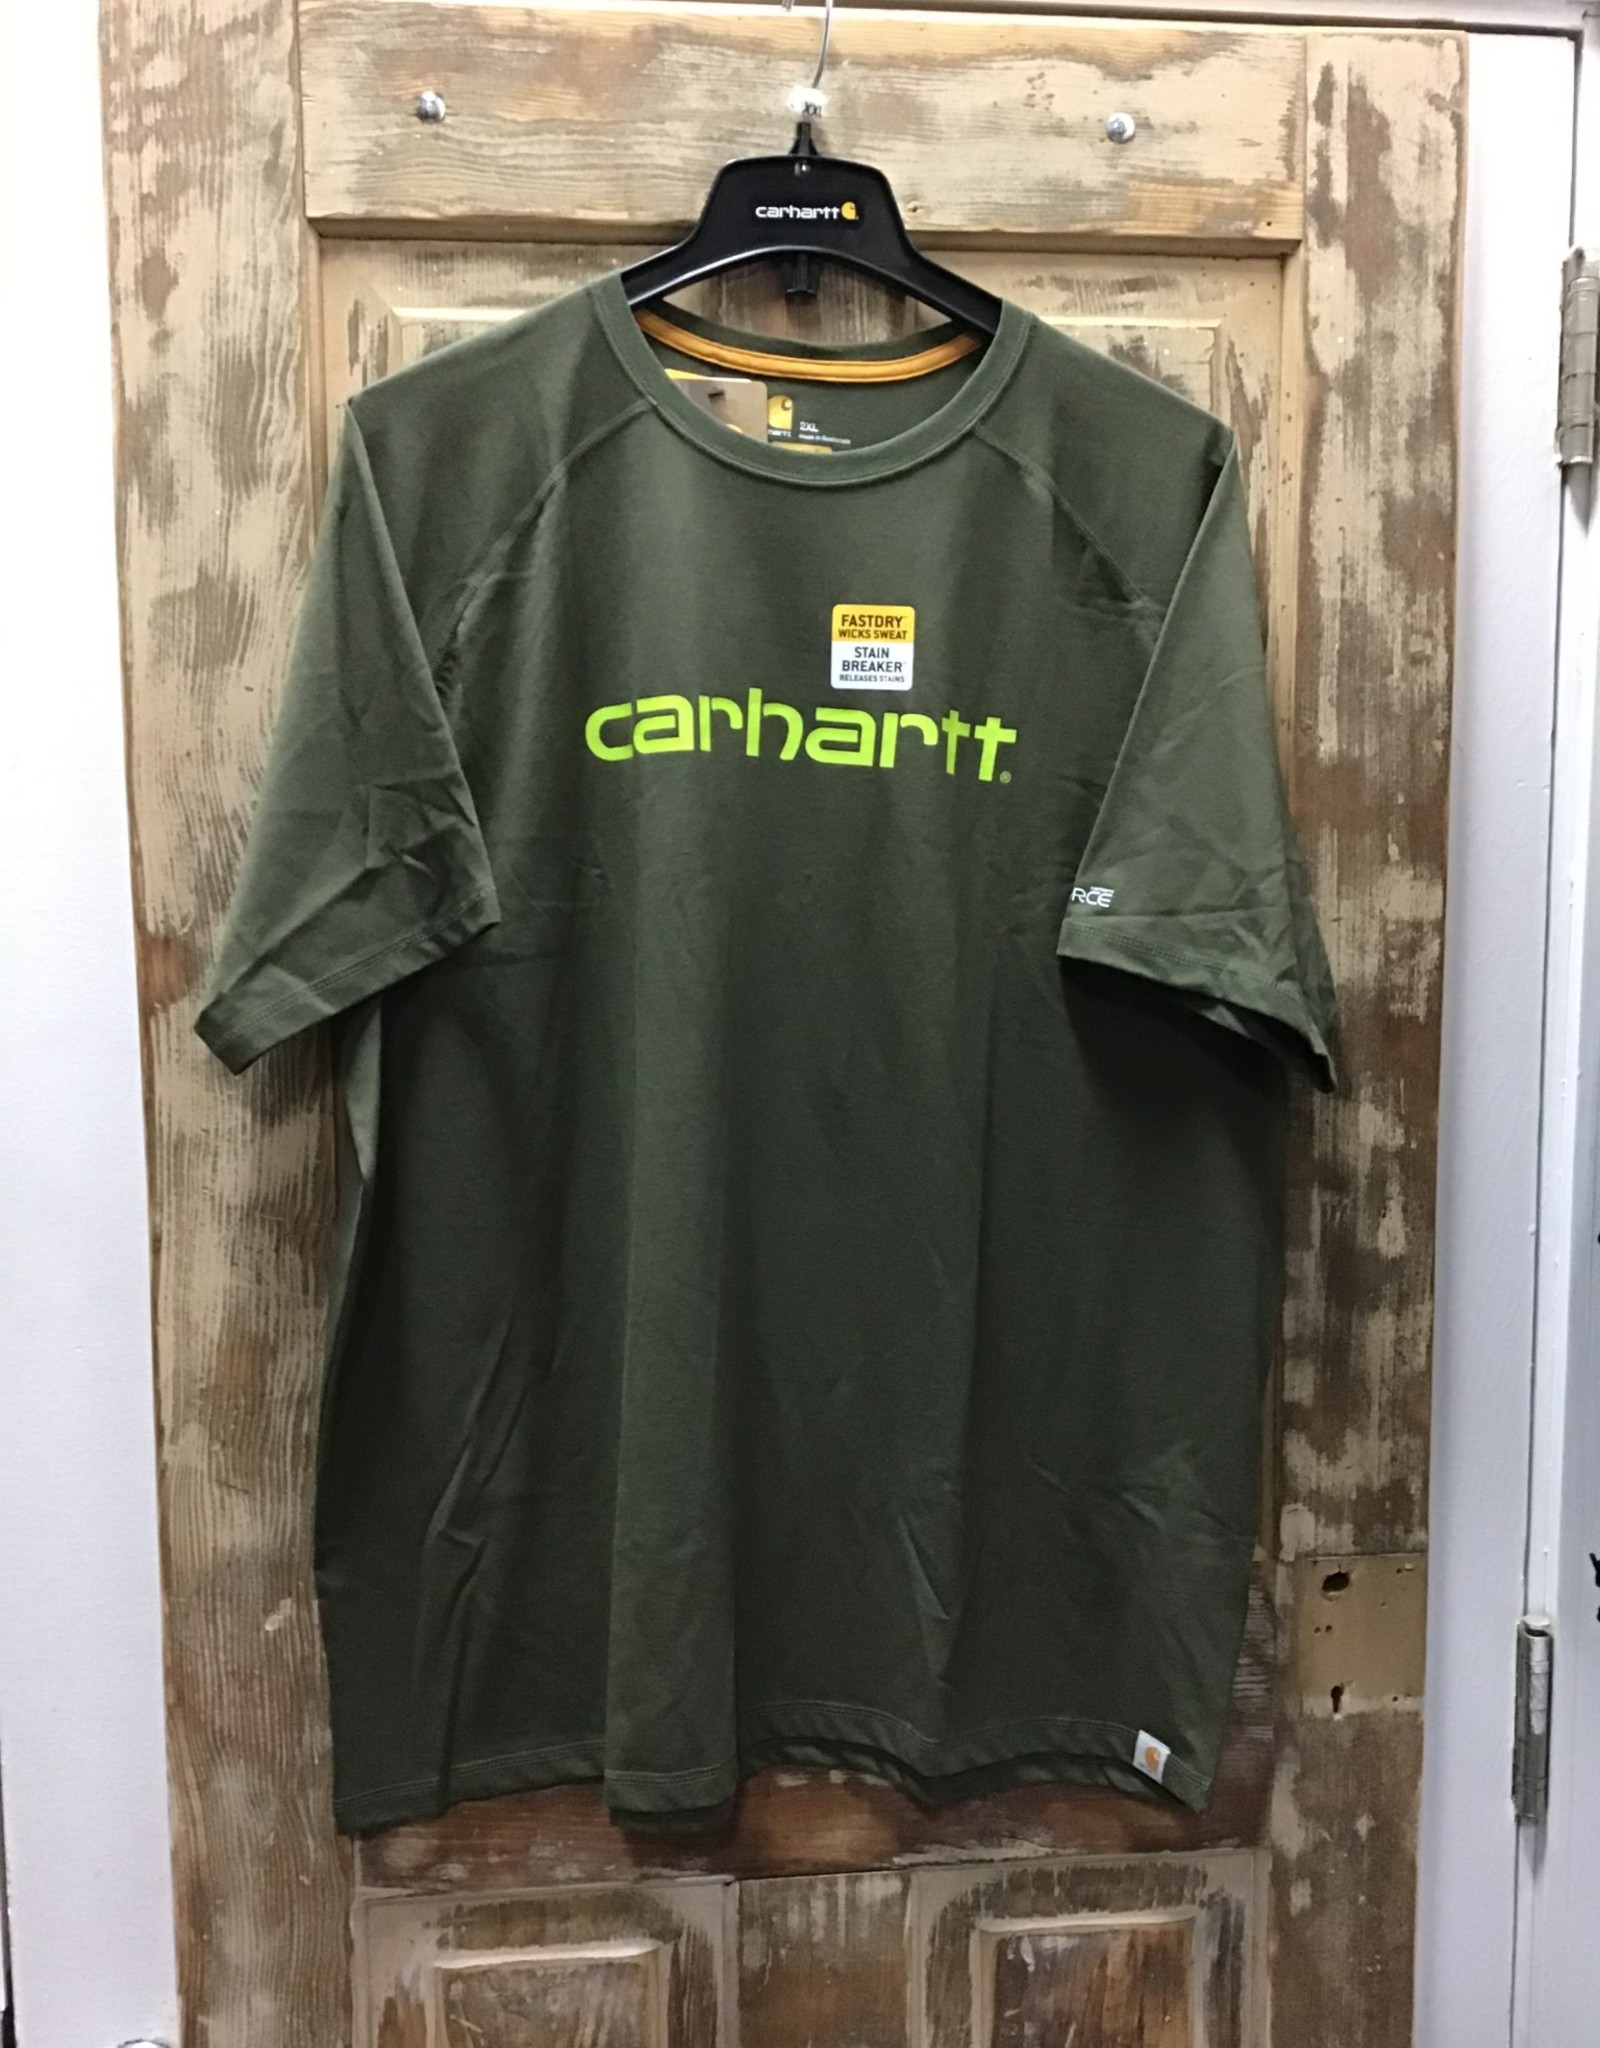 Carhartt Carhartt 102549 Force Delmont T-Shirt Men's